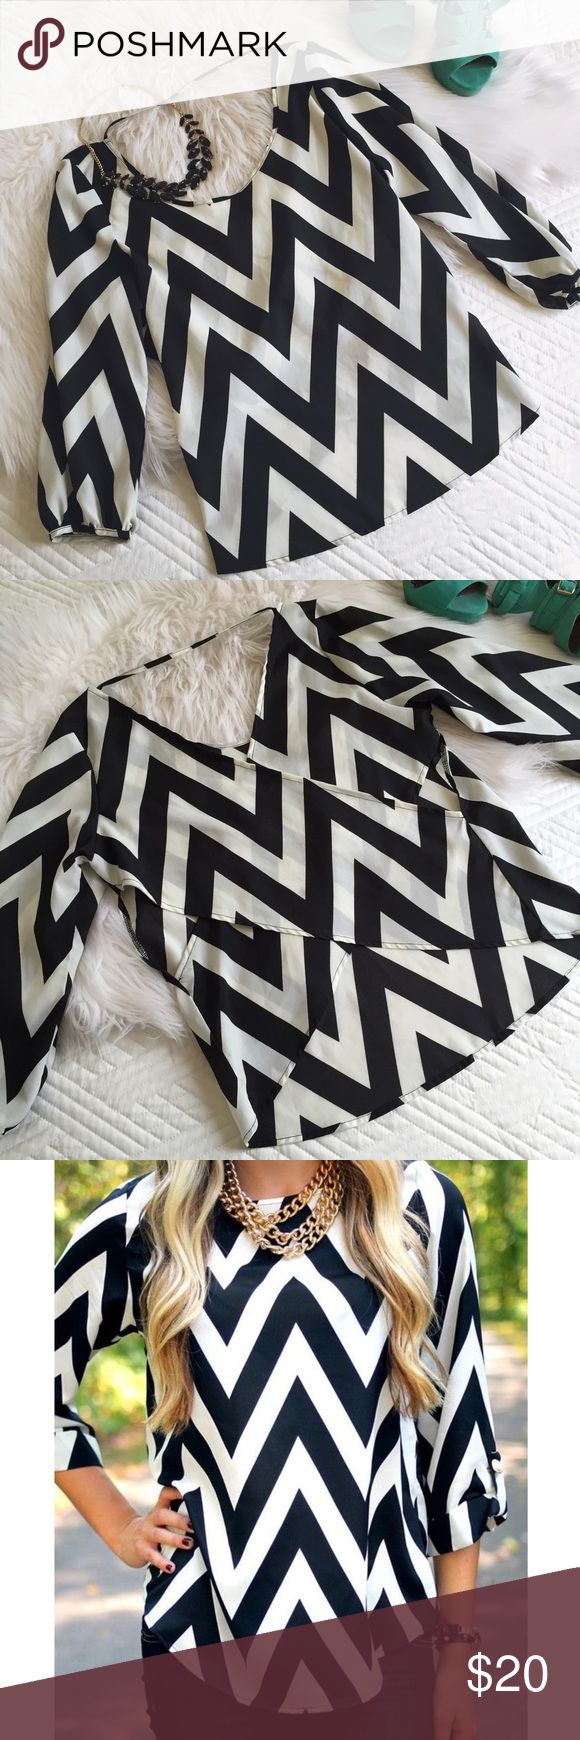 🆕 CHEVRON TOP Trendy black and white chevron top. EUC. Perfect for work or lunch with friends!  Has thin neck strap and unique cross-back design with peek-a-boo sides and lower back (shown in photo 2 above).   100% polyester. Dry clean only. Foreign Exchange Tops Blouses